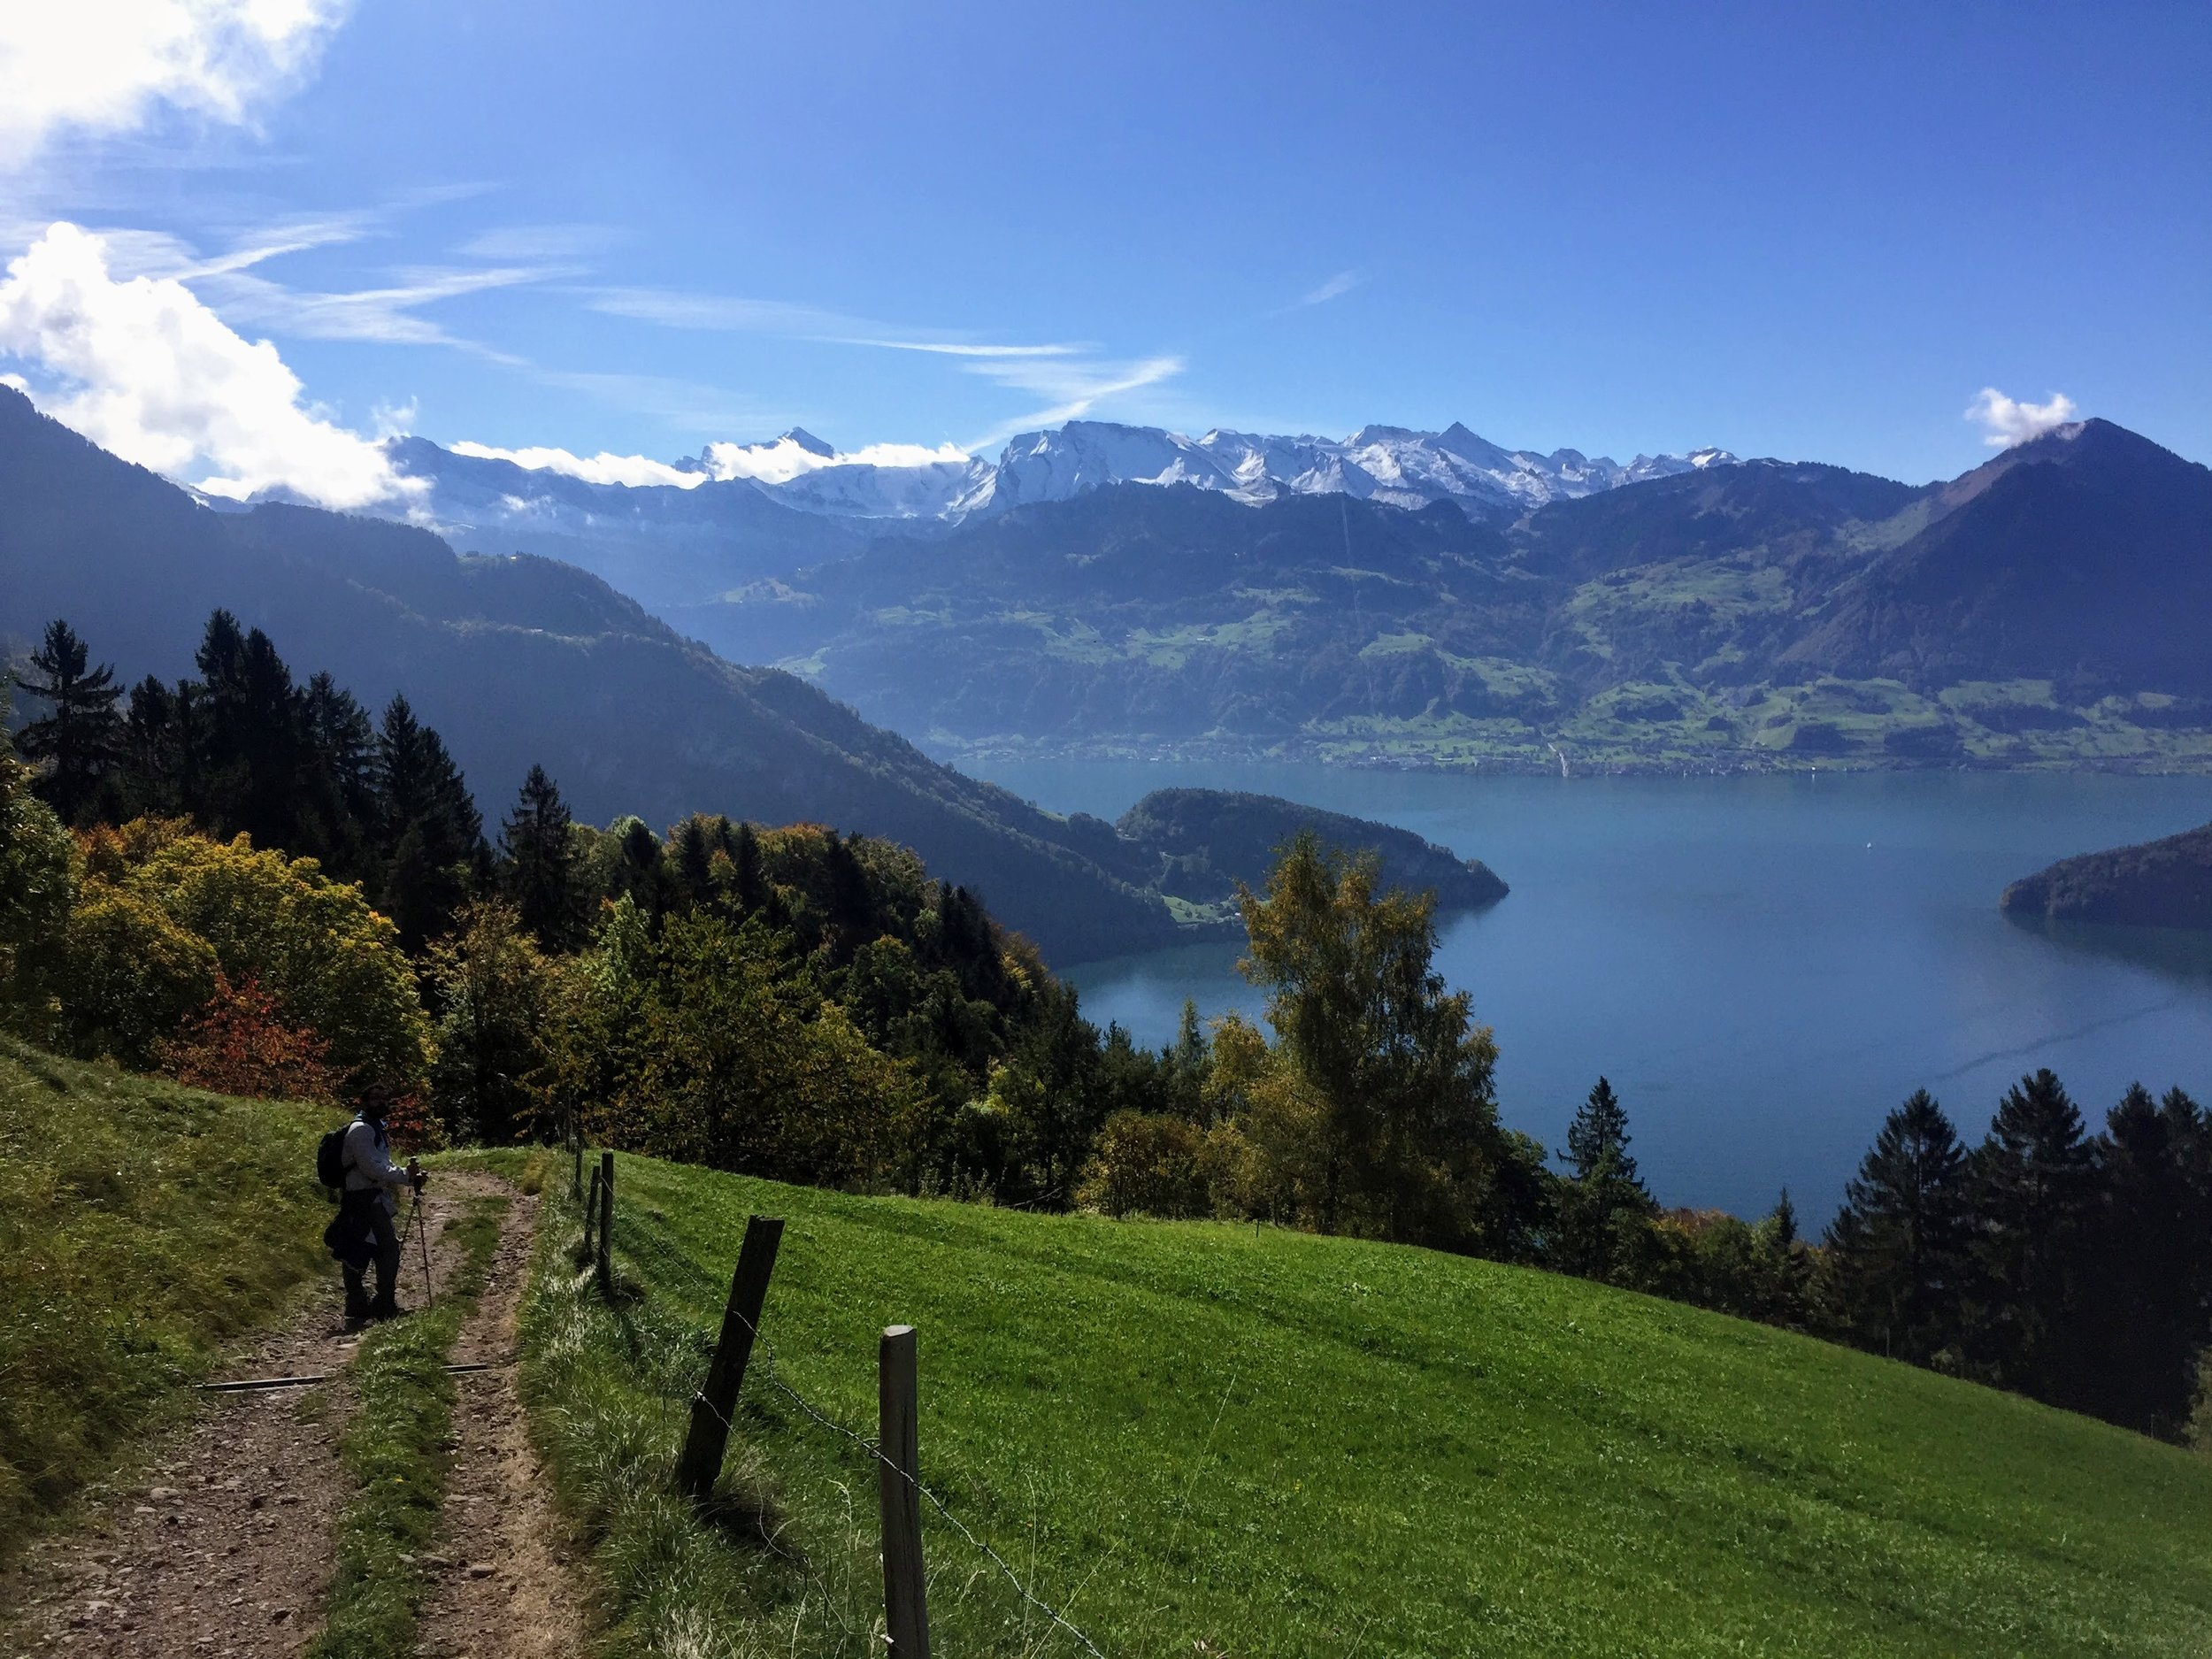 View of Lake Lucern and Alps